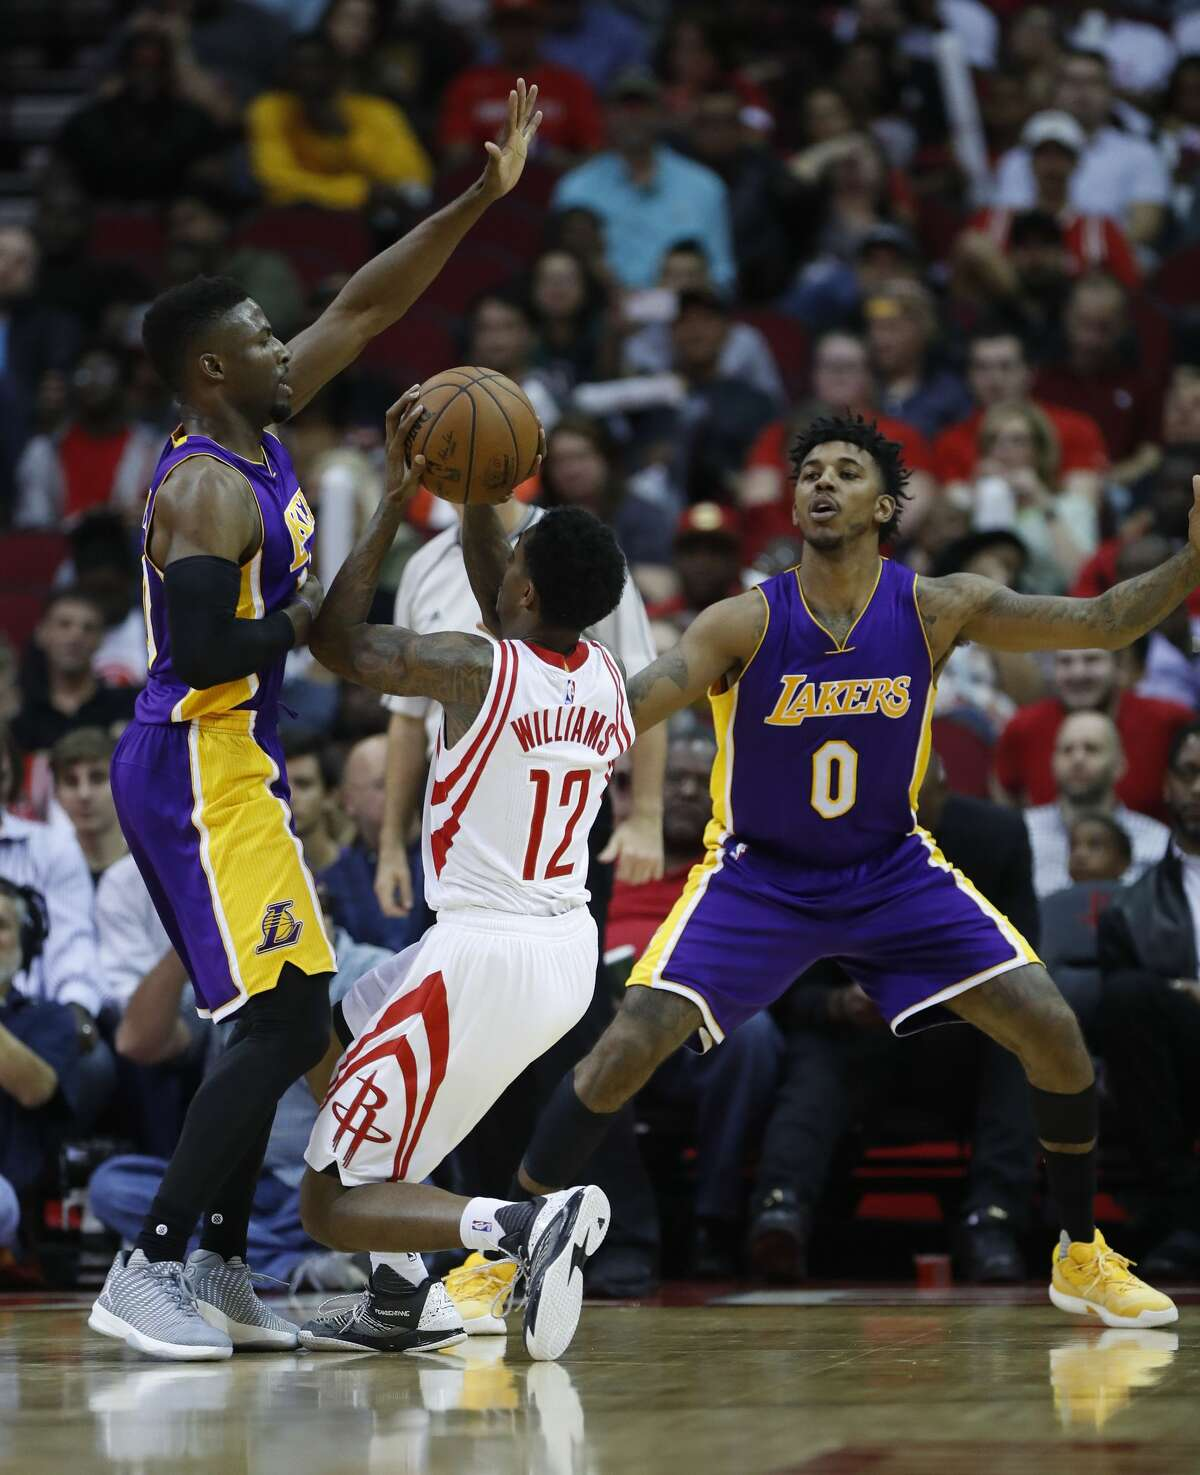 Houston Rockets guard Lou Williams (12) during the second half of an NBA game at Toyota Center, Wednesday, March 15, 2017, in Houston. ( Karen Warren / Houston Chronicle )